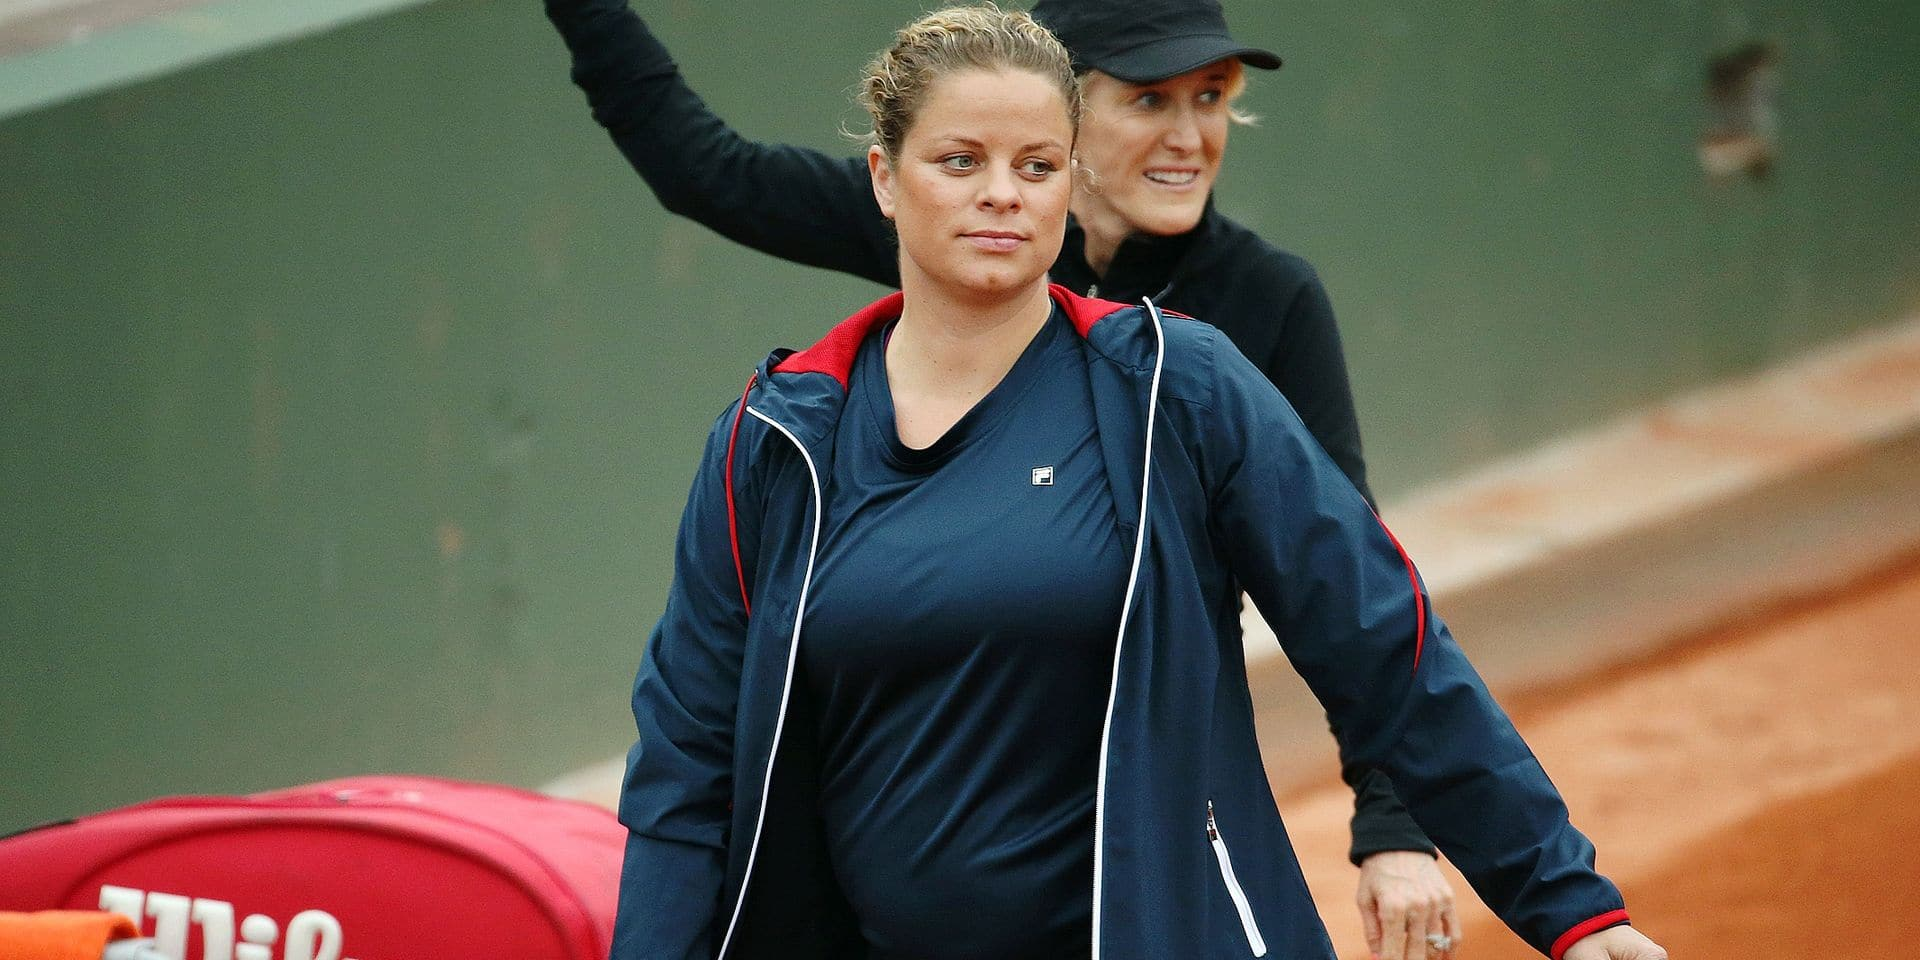 former tennis number 1 Kim Clijsters pictured during a doubles tennis game between American Tracy Austin-Holt and Belgian Kim Clijsters versus Croatian Iva Majoli and Spanish Arantxa Sanchez, during the Legend's Trophy at the Roland Garros French Open tennis tournament, in Paris, France, Wednesday 01 June 2016. The Roland Garros Grand Slam takes place from 15 May to 5 June 2016. BELGA PHOTO VIRGINIE LEFOUR